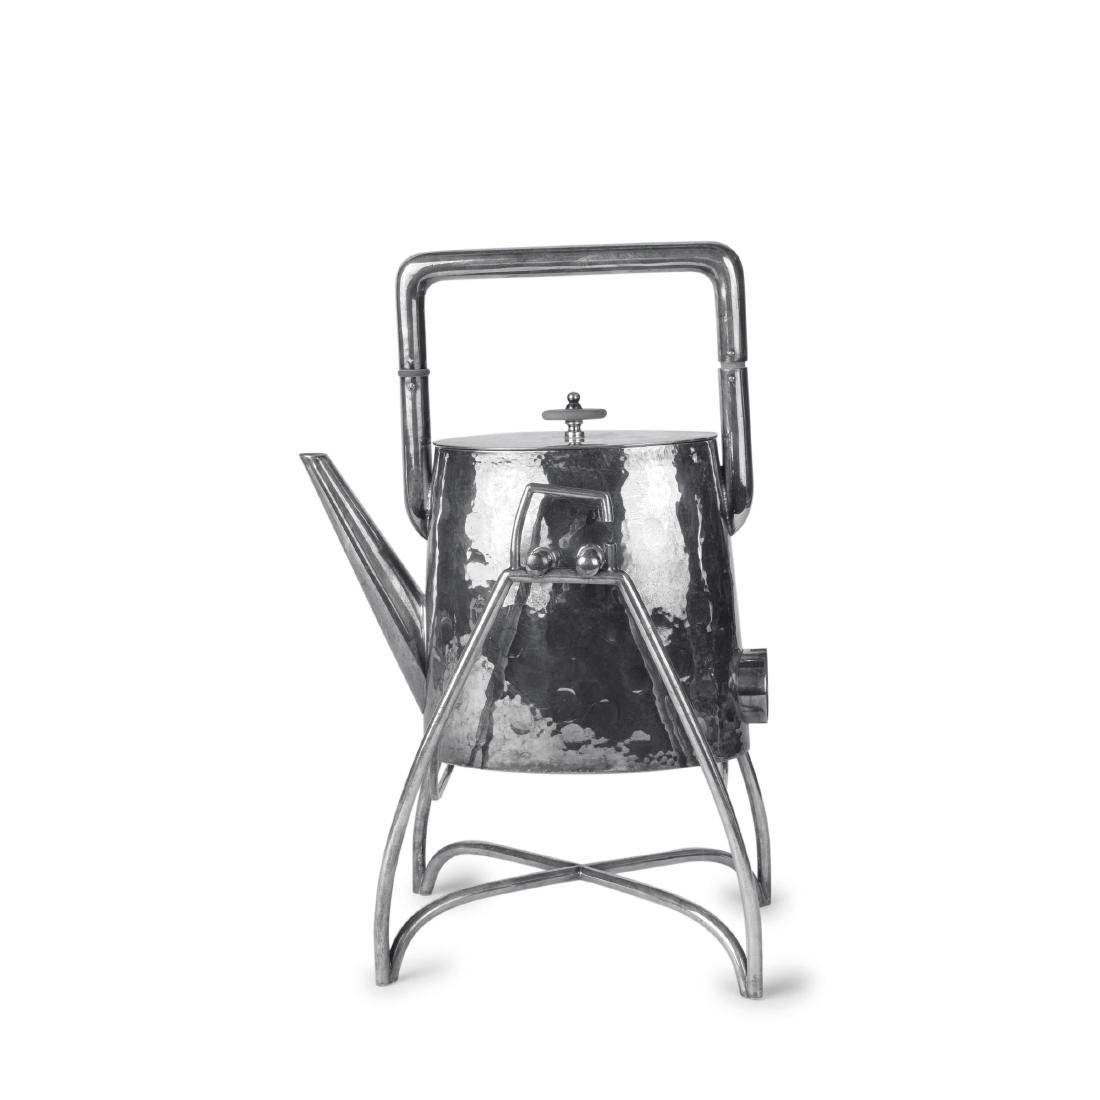 Electric water kettle with stand, c. 1930